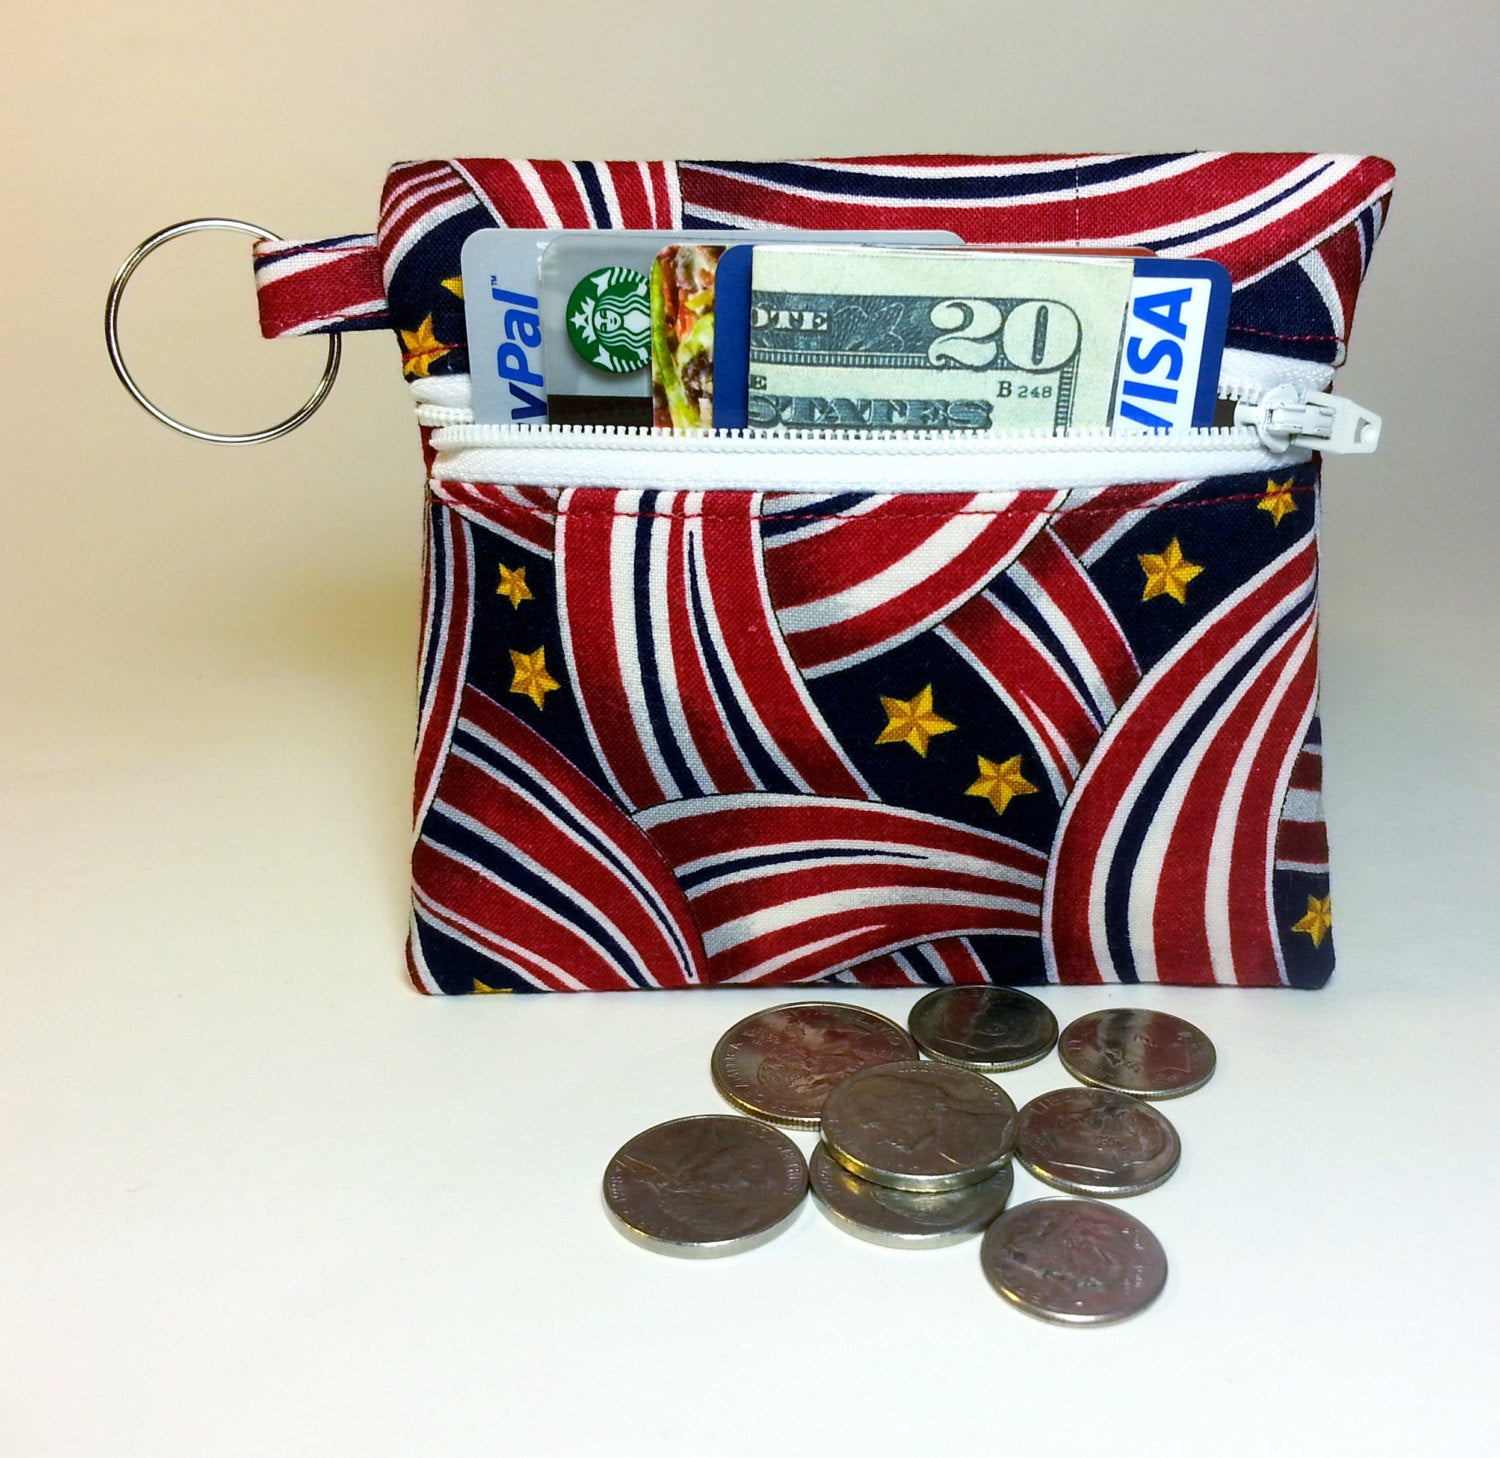 Coin Purse, Change Purse, Business Card Holder, Key Chain - Red ...